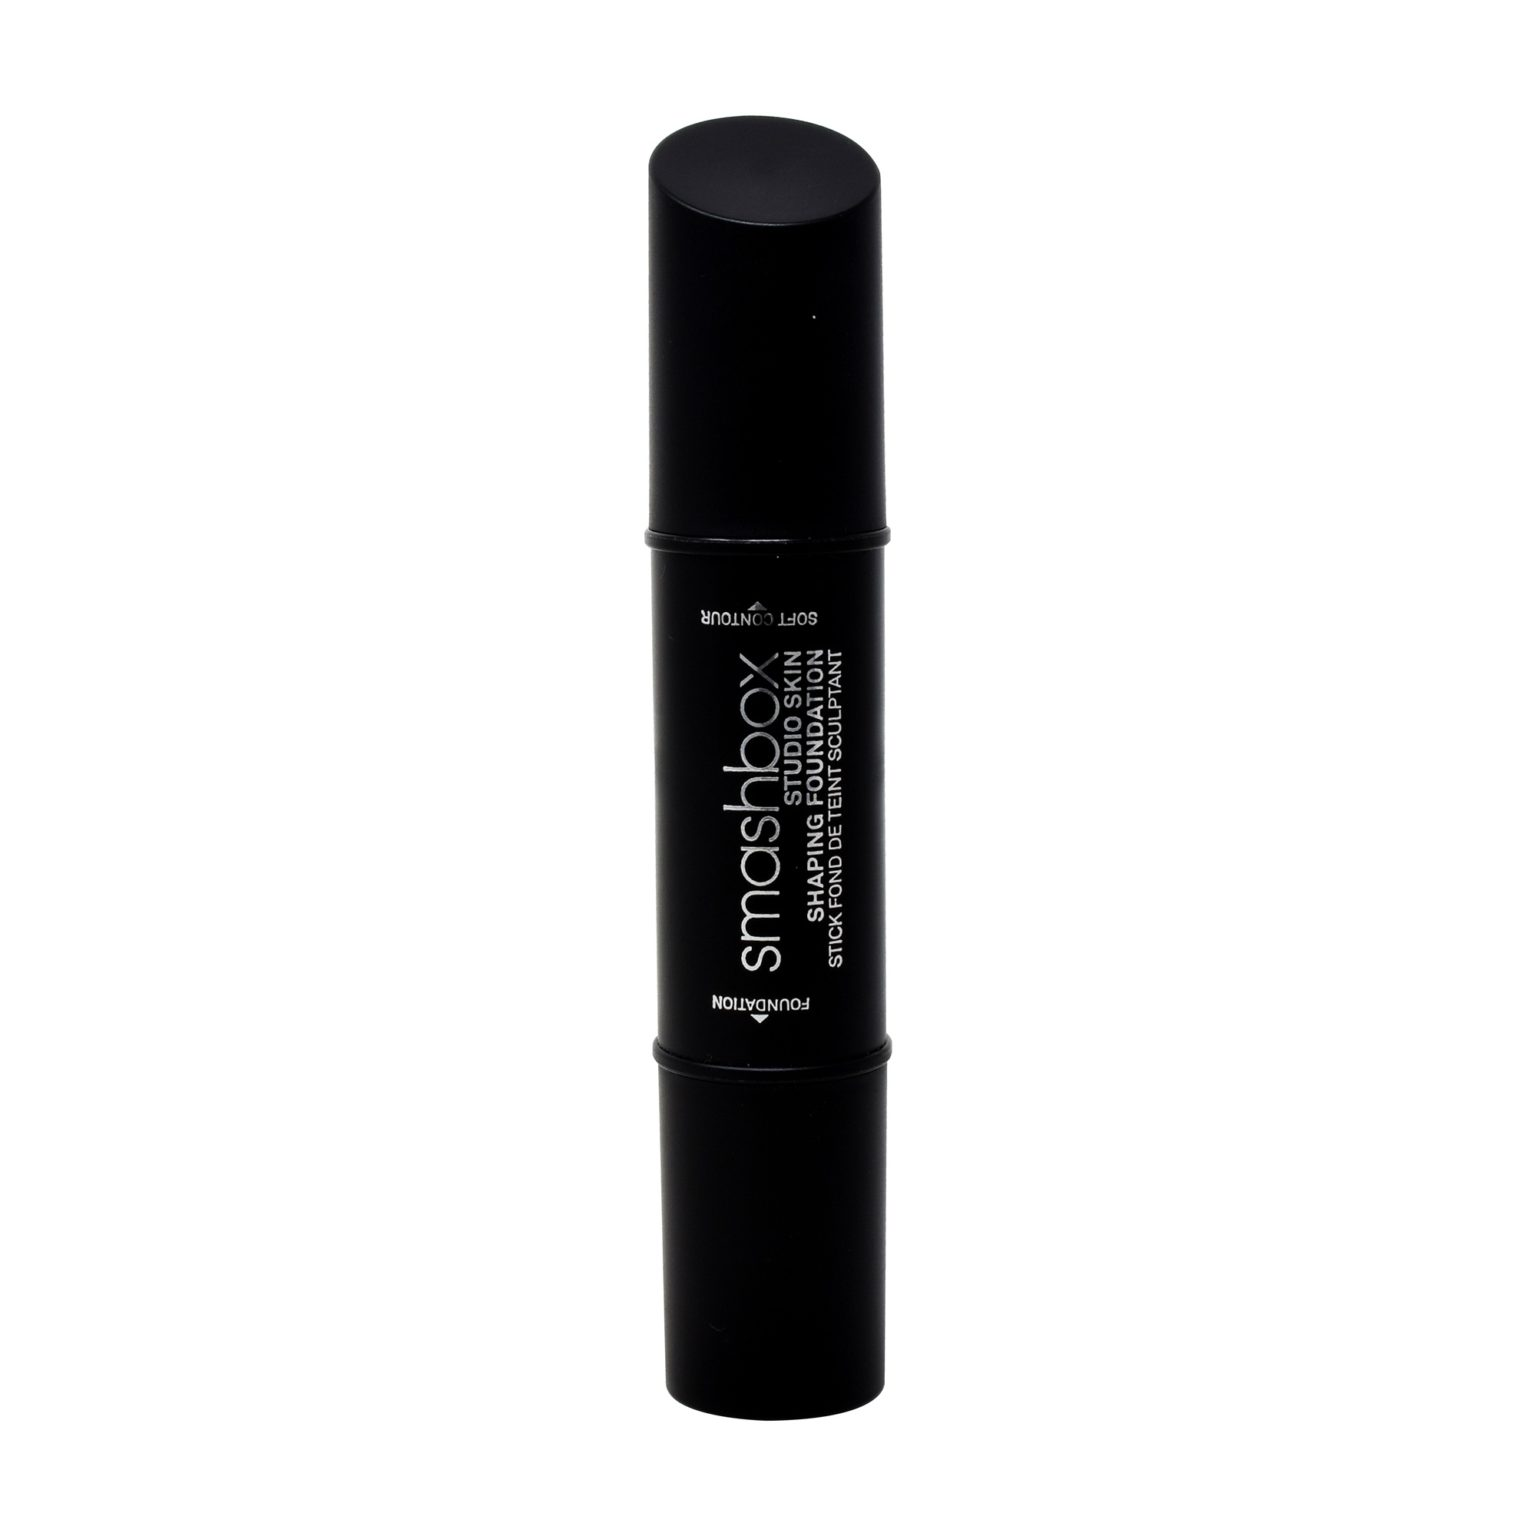 Z8 STUDIO SKIN SHAPING FOUNDATION STICK 2.2 LIGHT WARM BEIGE + SOFT CONTOU